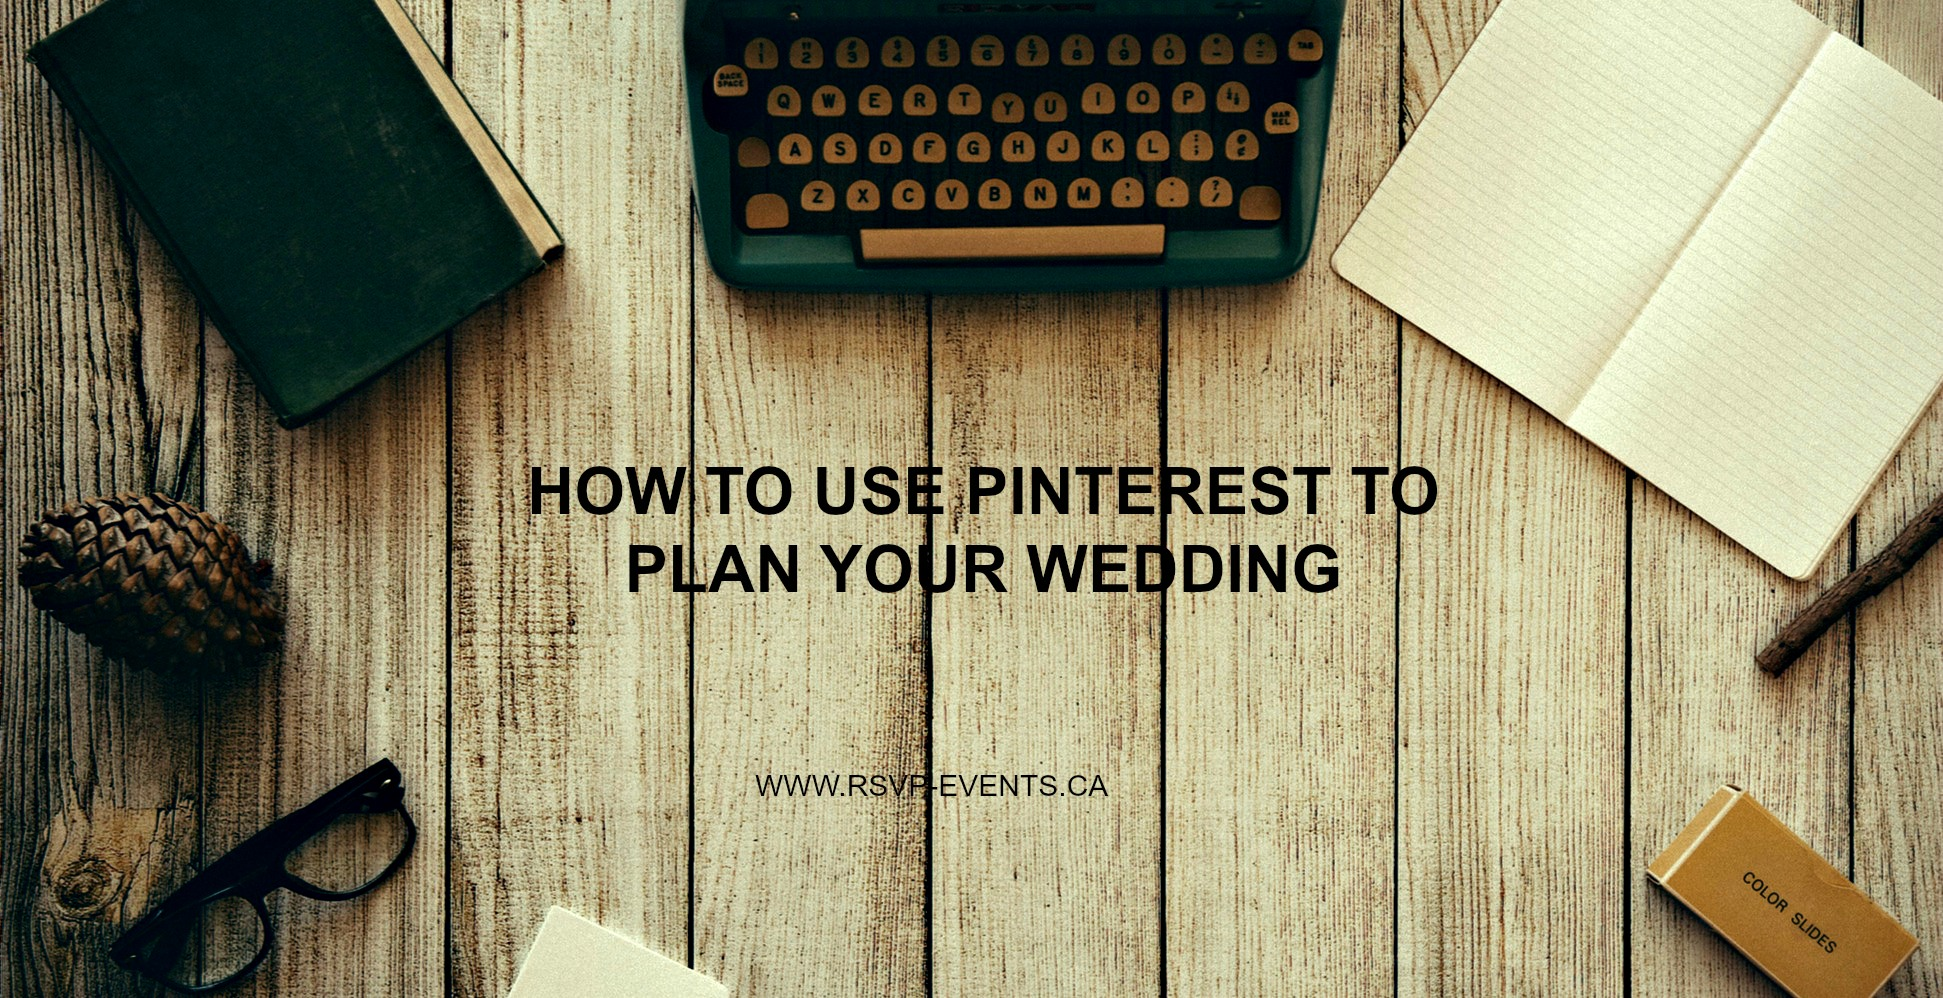 How to use Pinterest to plan a wedding